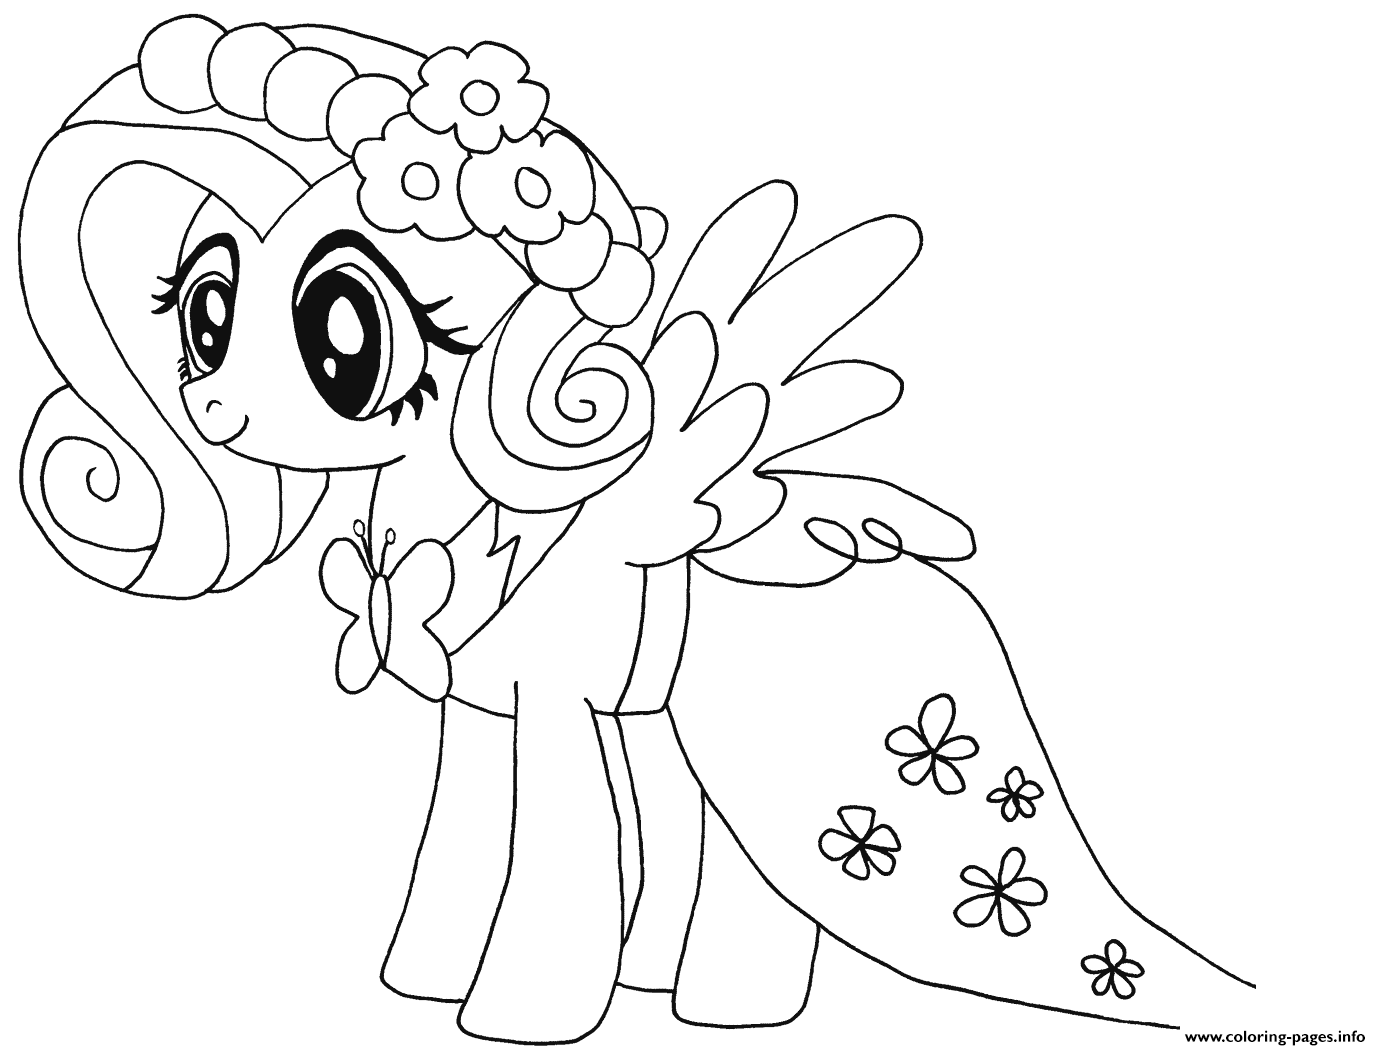 My Little Pony Fluttershy Ausmalbilder : My Little Pony Coloring Pages Pdf Costumepartyrun